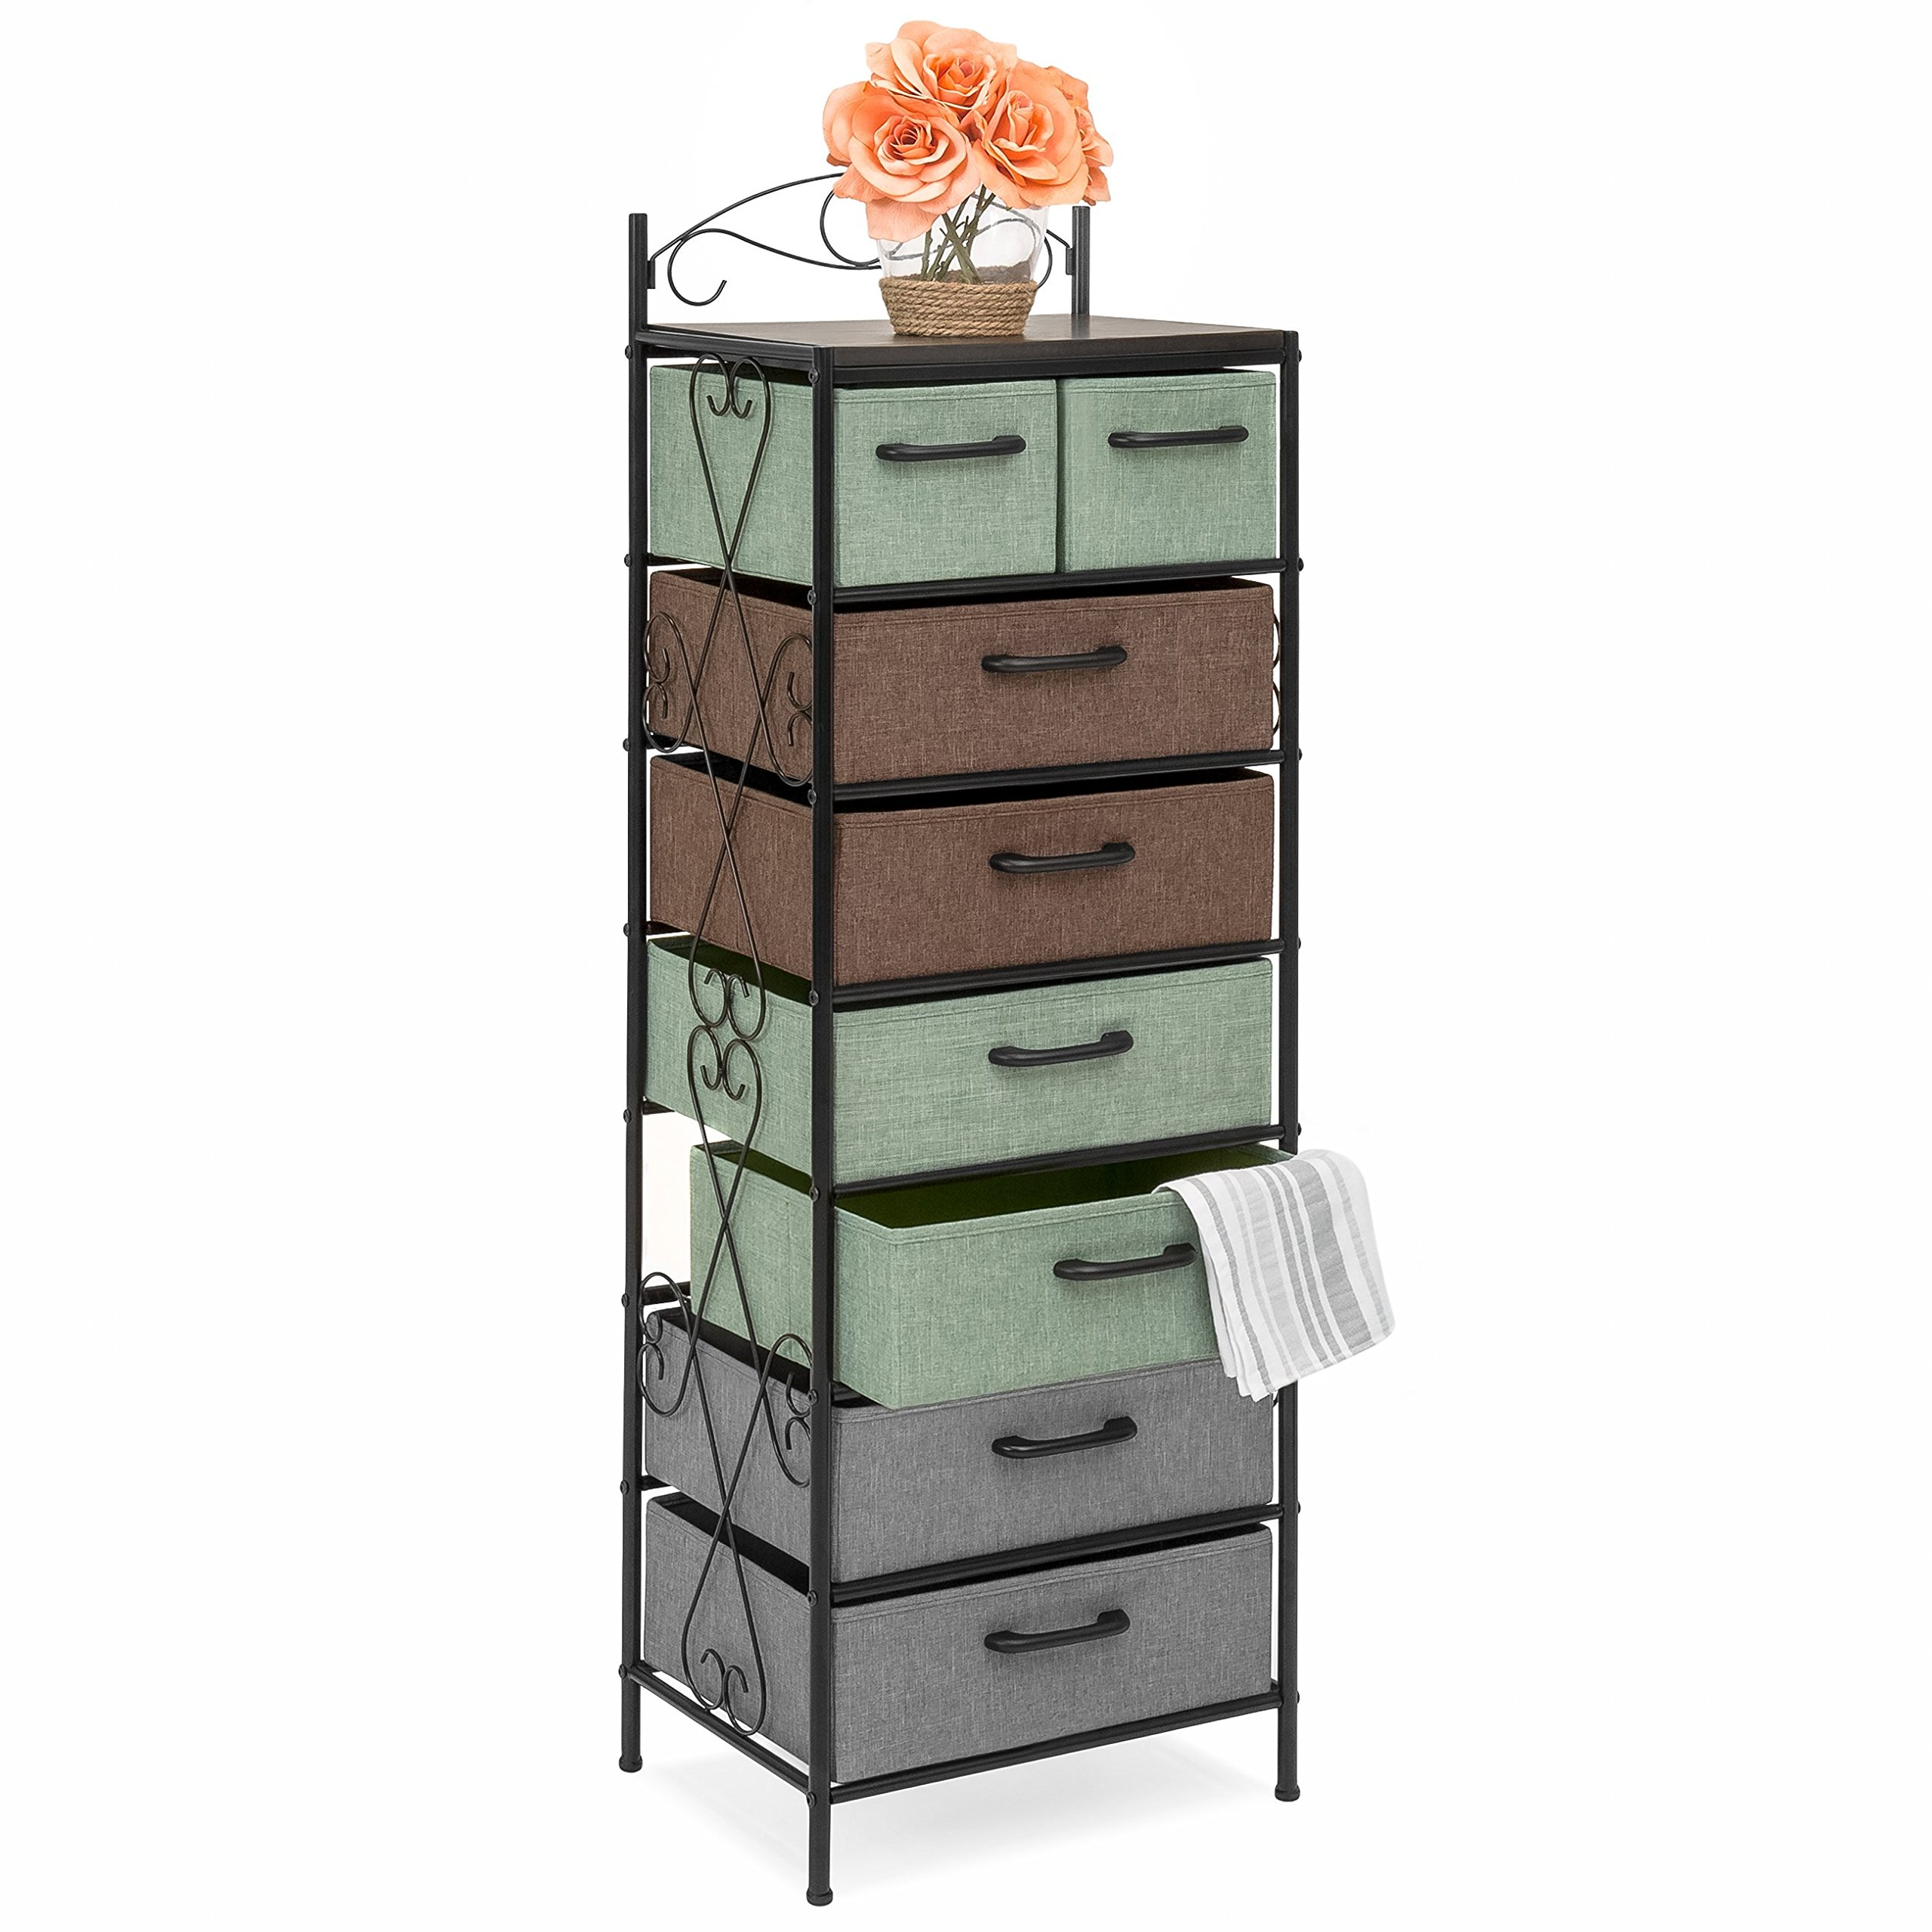 Best Choice Products 8-Drawer Metal Tower Storage Cabinet (Multicolor) by Best Choice Products (Image #1)